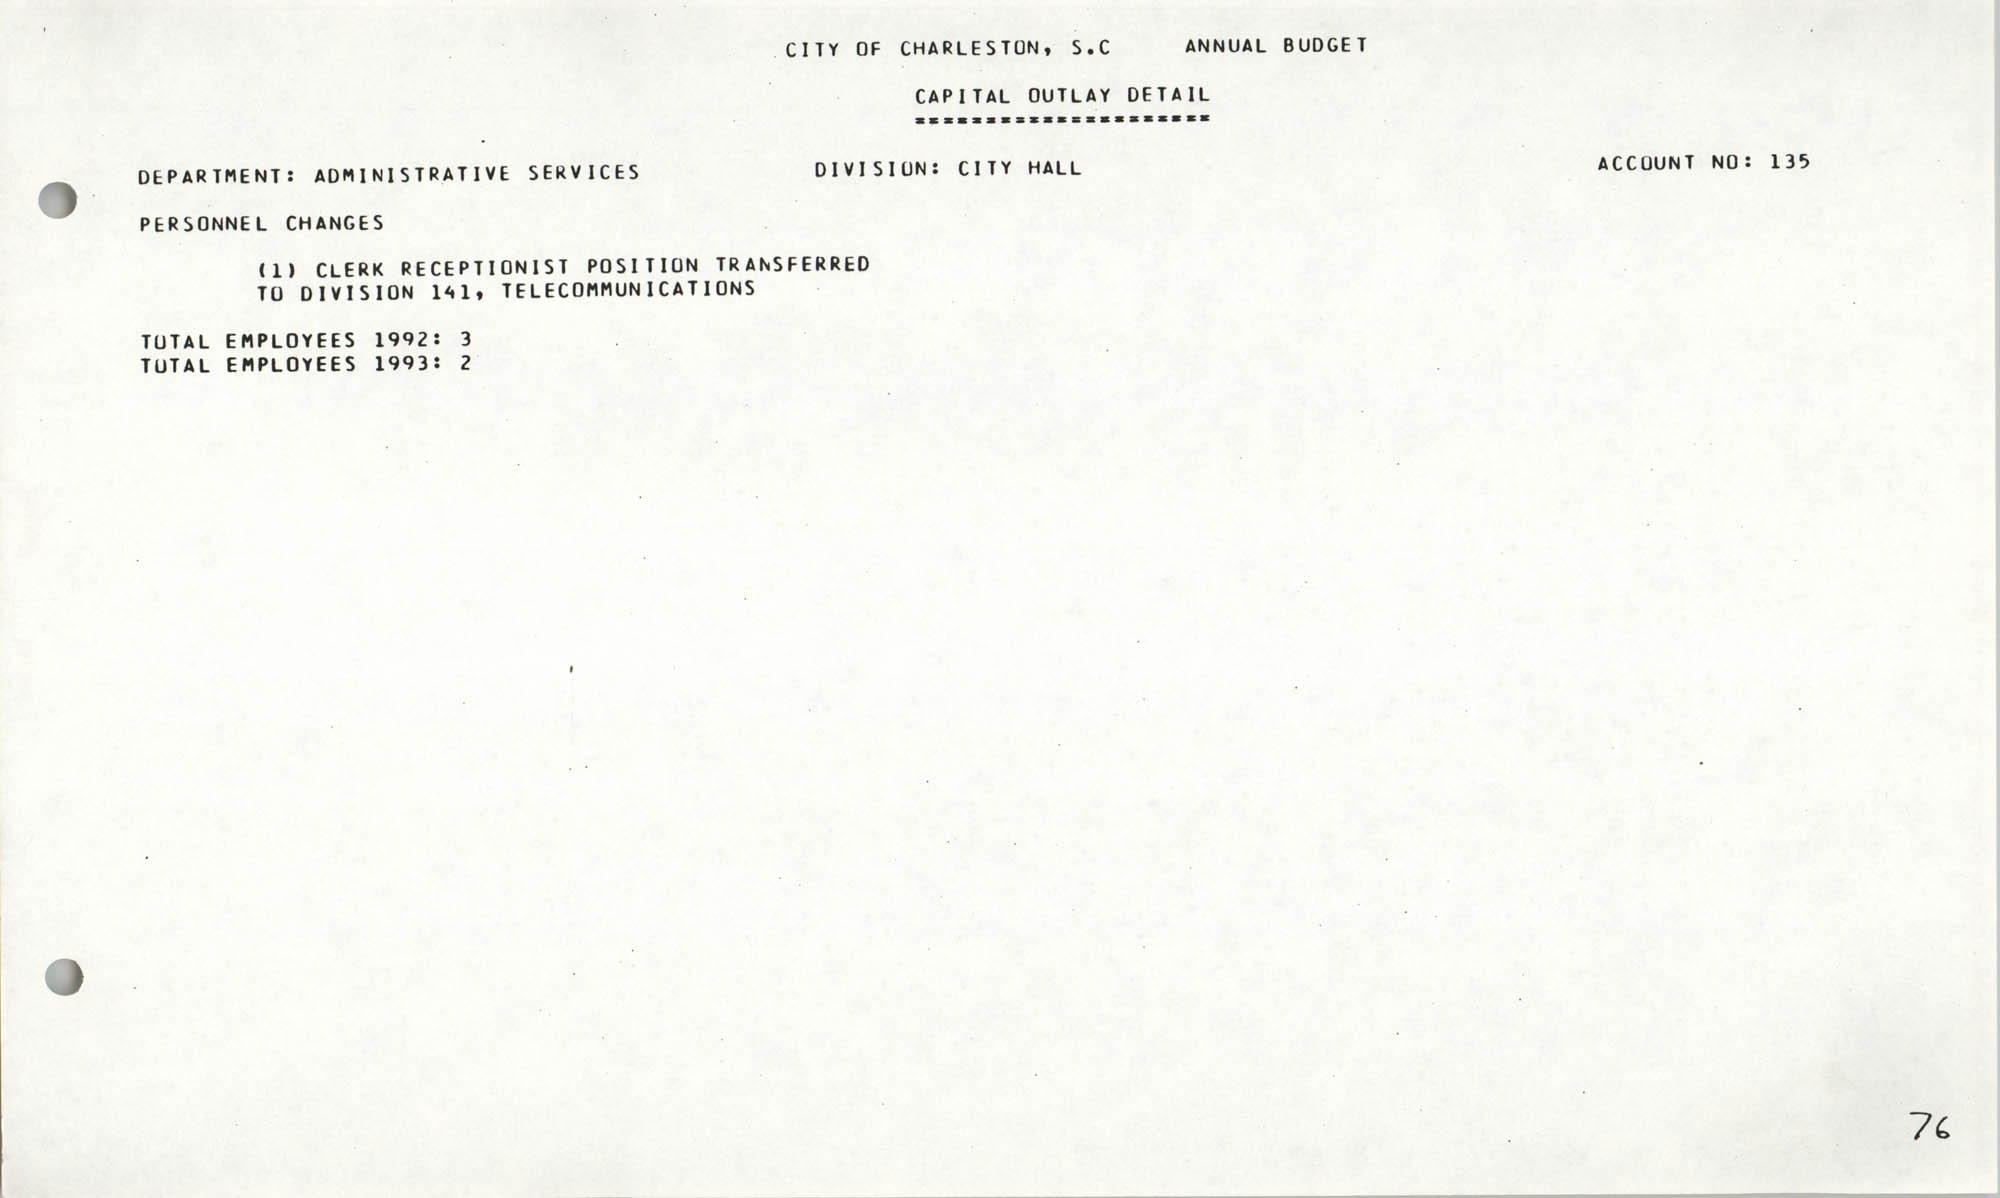 The City Council of Charleston, South Carolina, 1993 Budget, Page 76